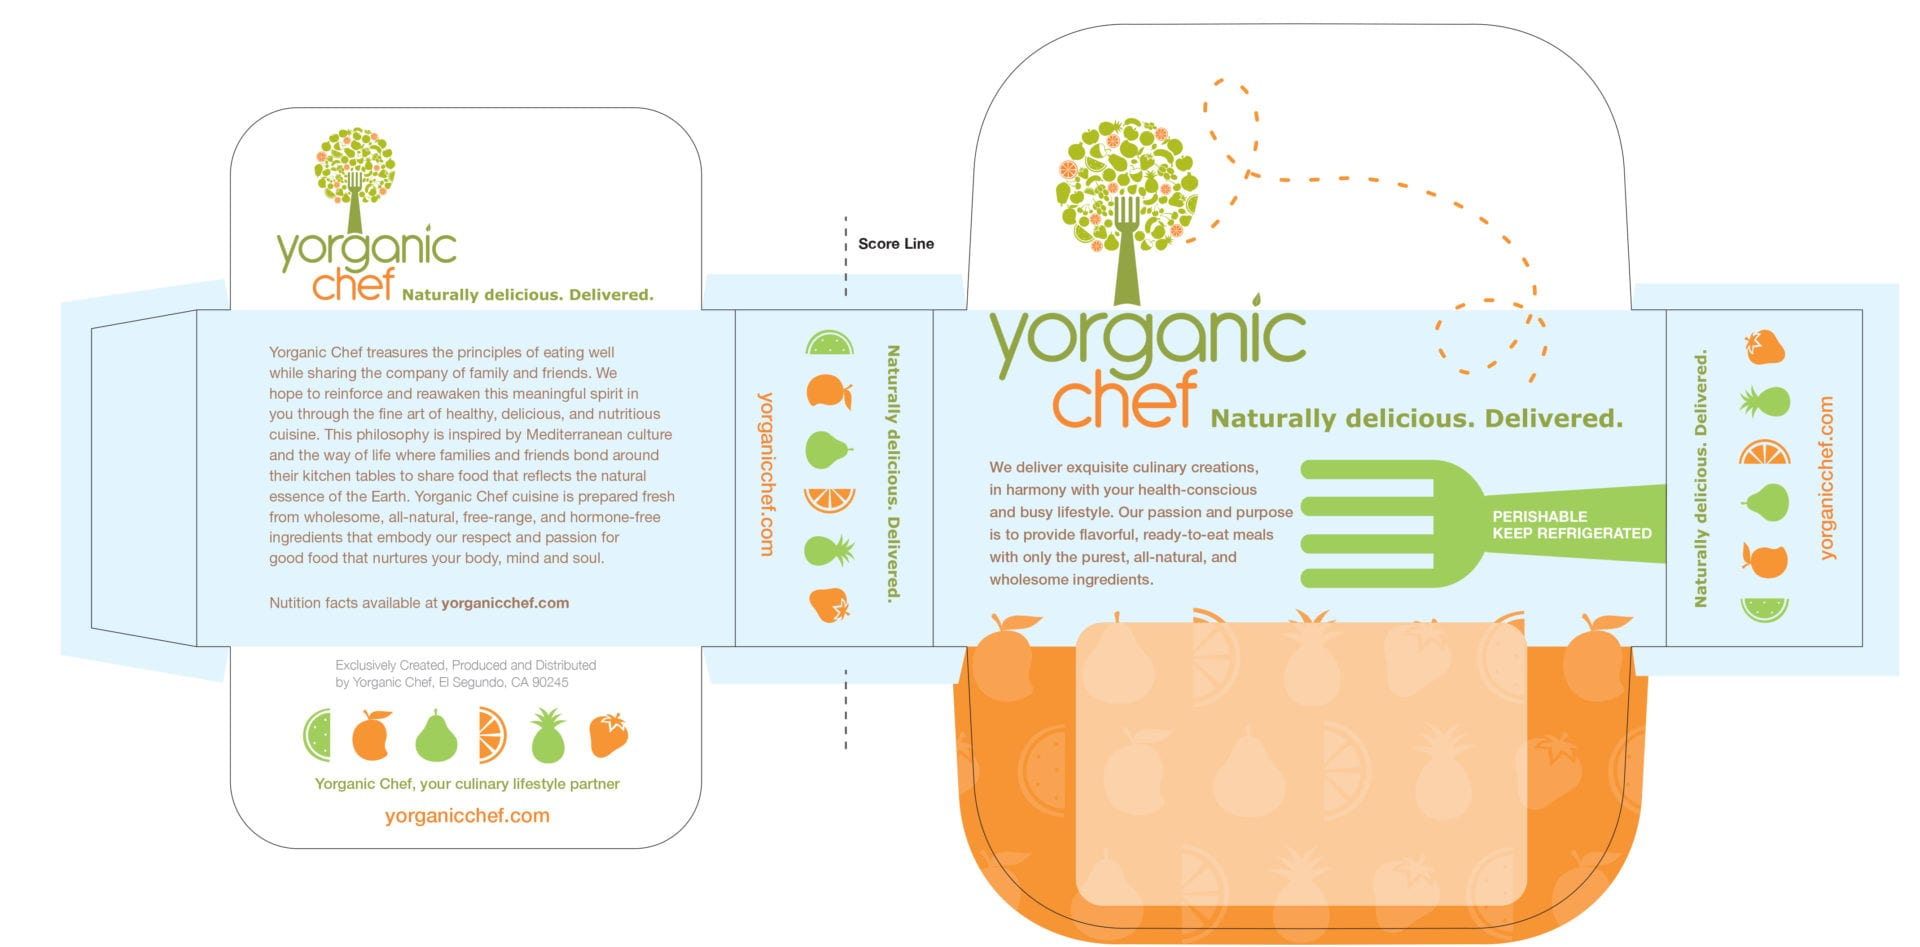 Another design layout of a Yorganic Chef salad box cover